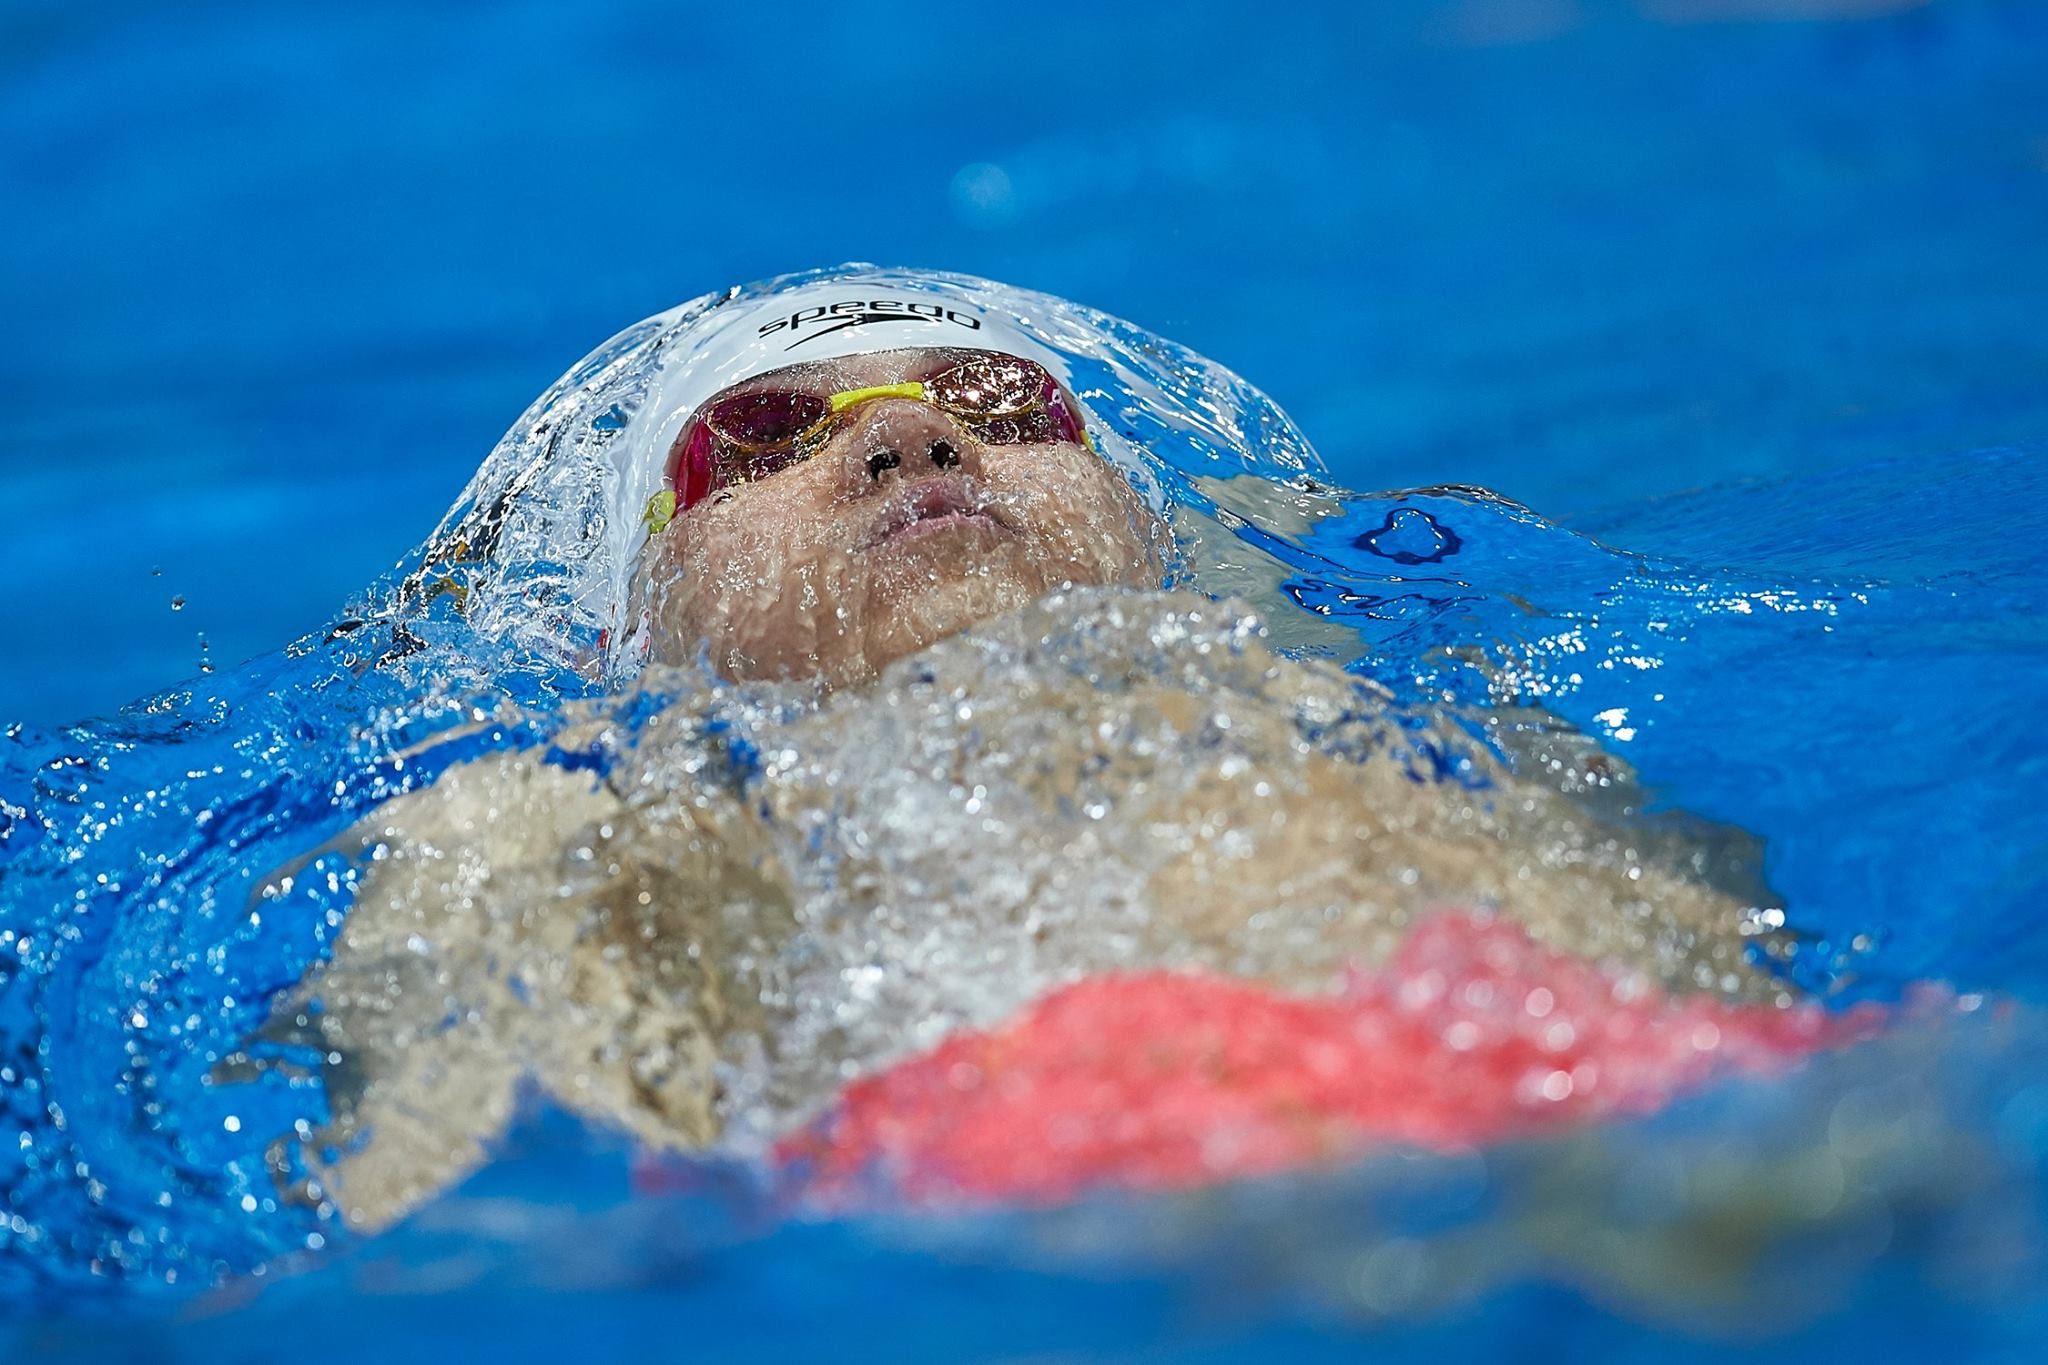 China's Qin Haiyang was among the gold medallists after winning the men's 200 metres individual medley final in a Games record time ©Ashgabat 2017/Facebook